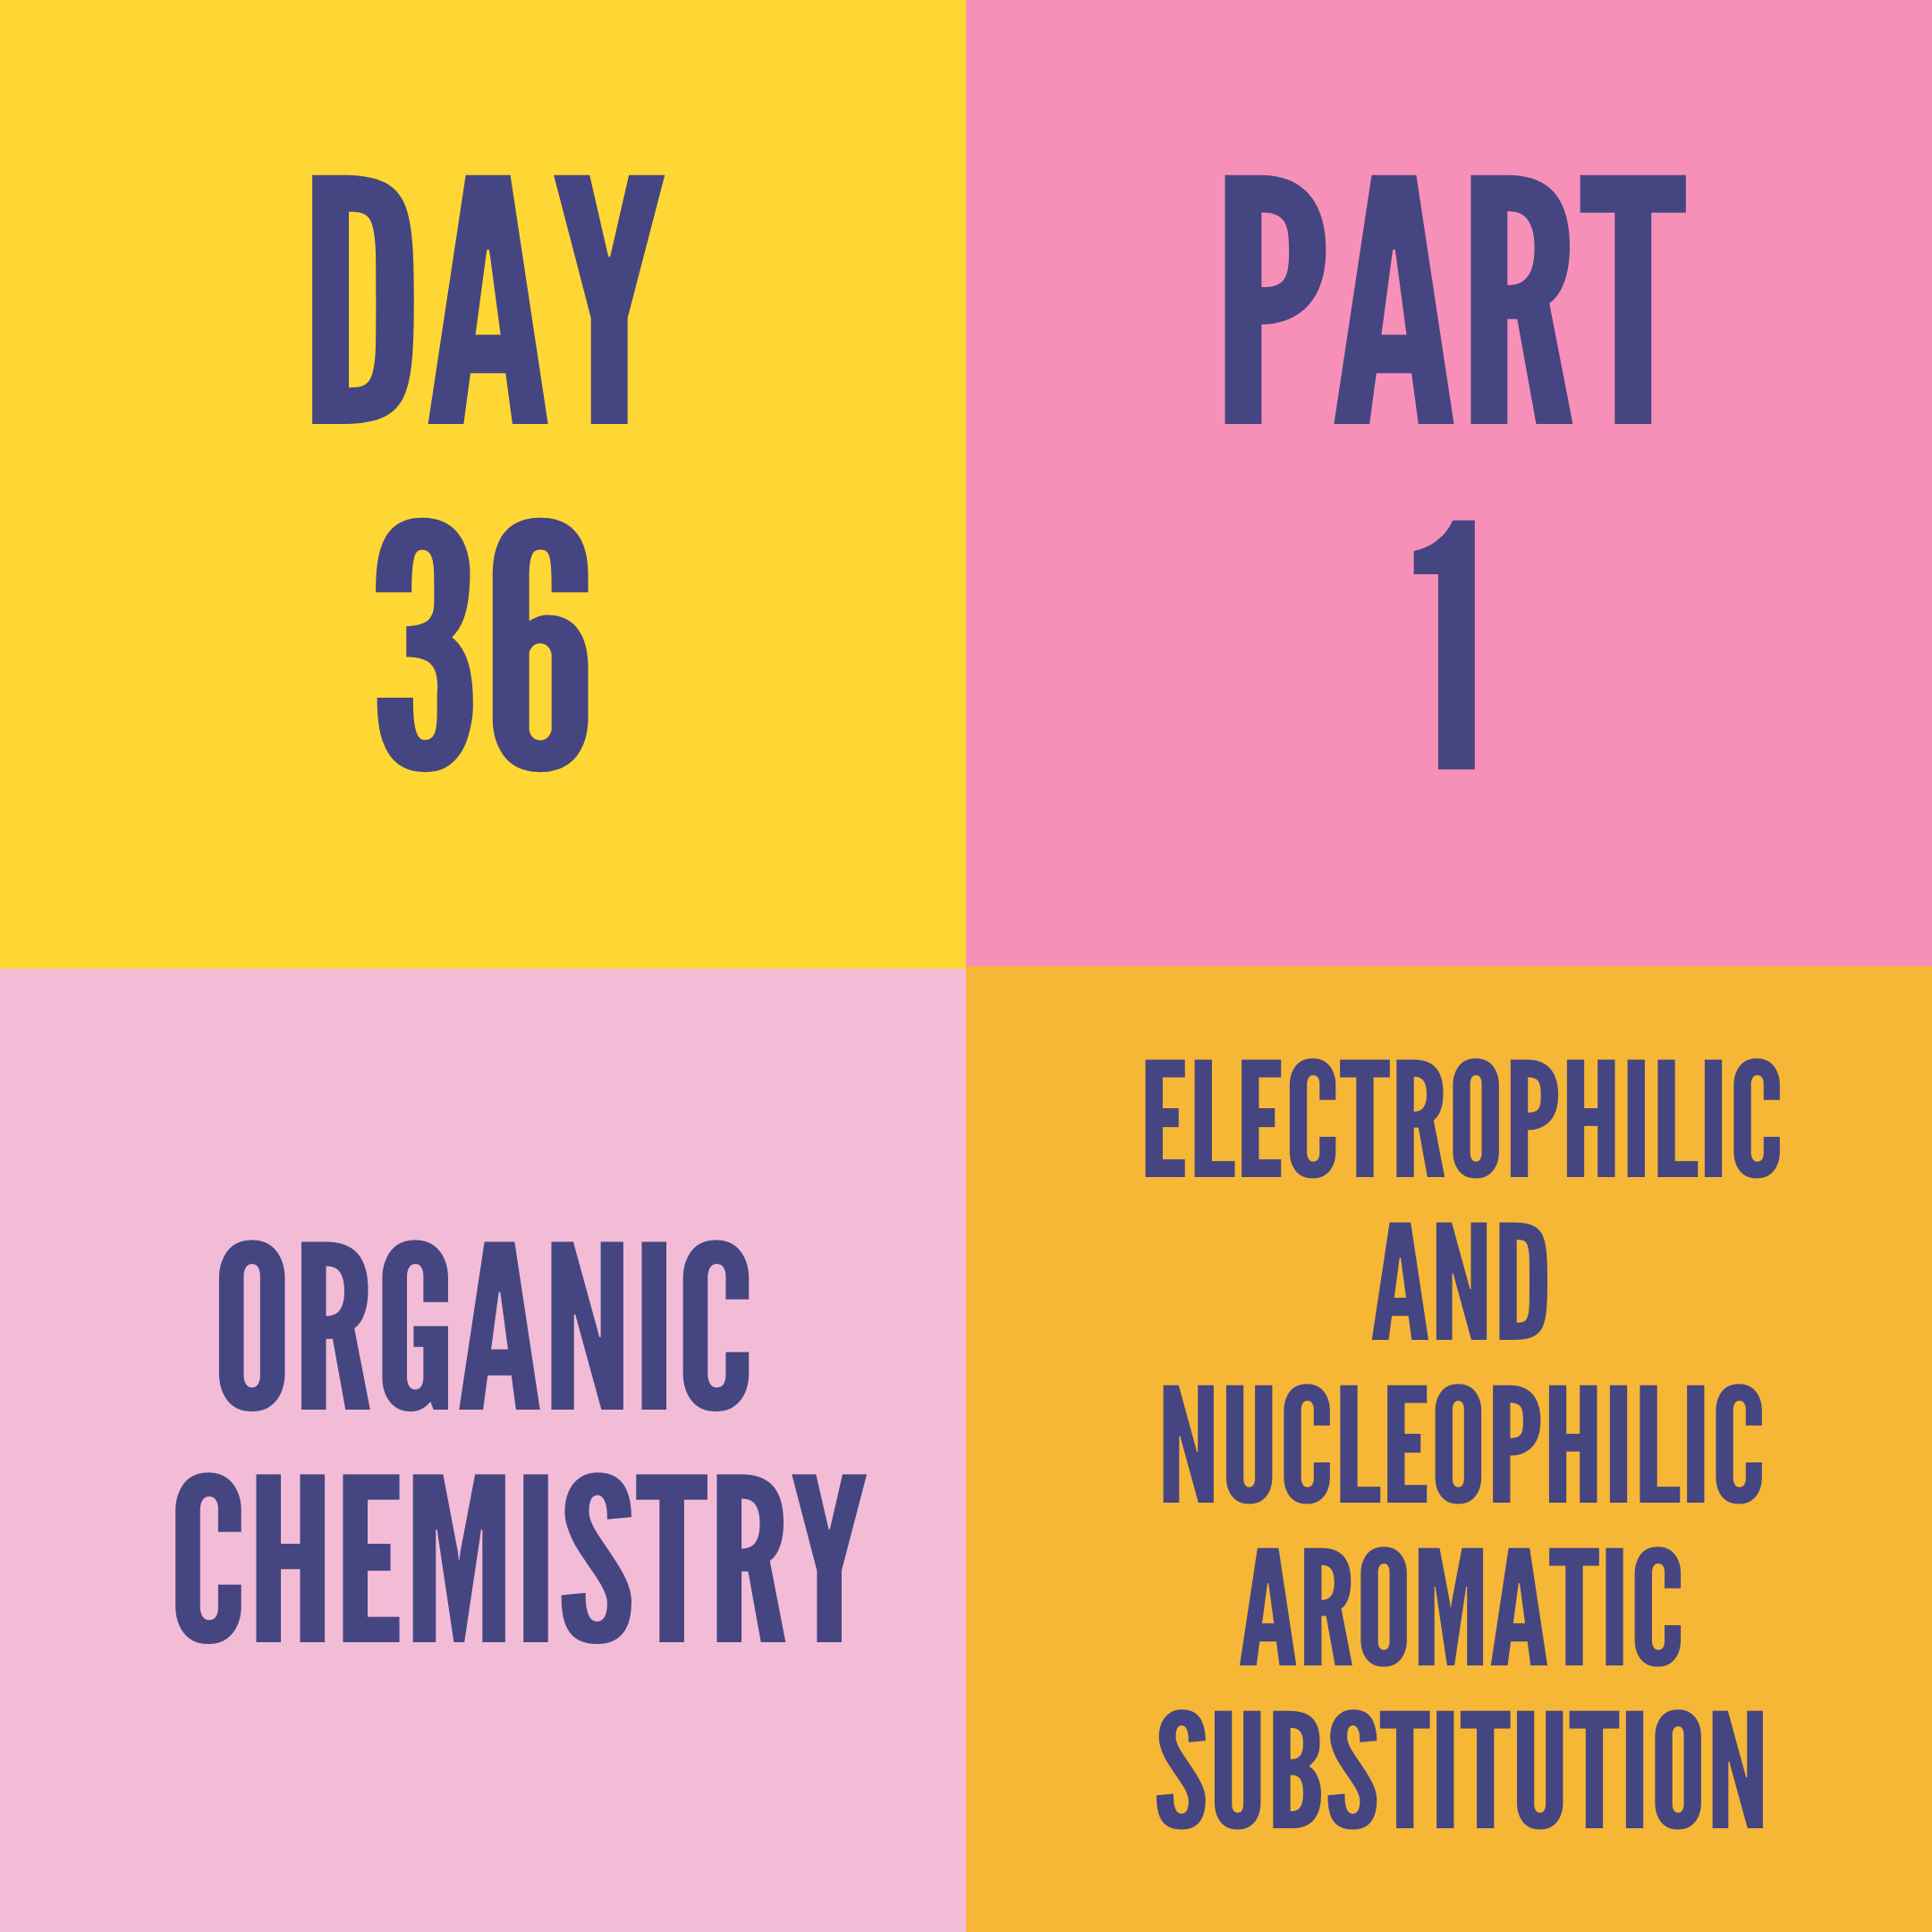 DAY-36 PART-1 ELECTROPHILIC AND NUCLEOPHILIC AROMATIC SUBSTITUTION